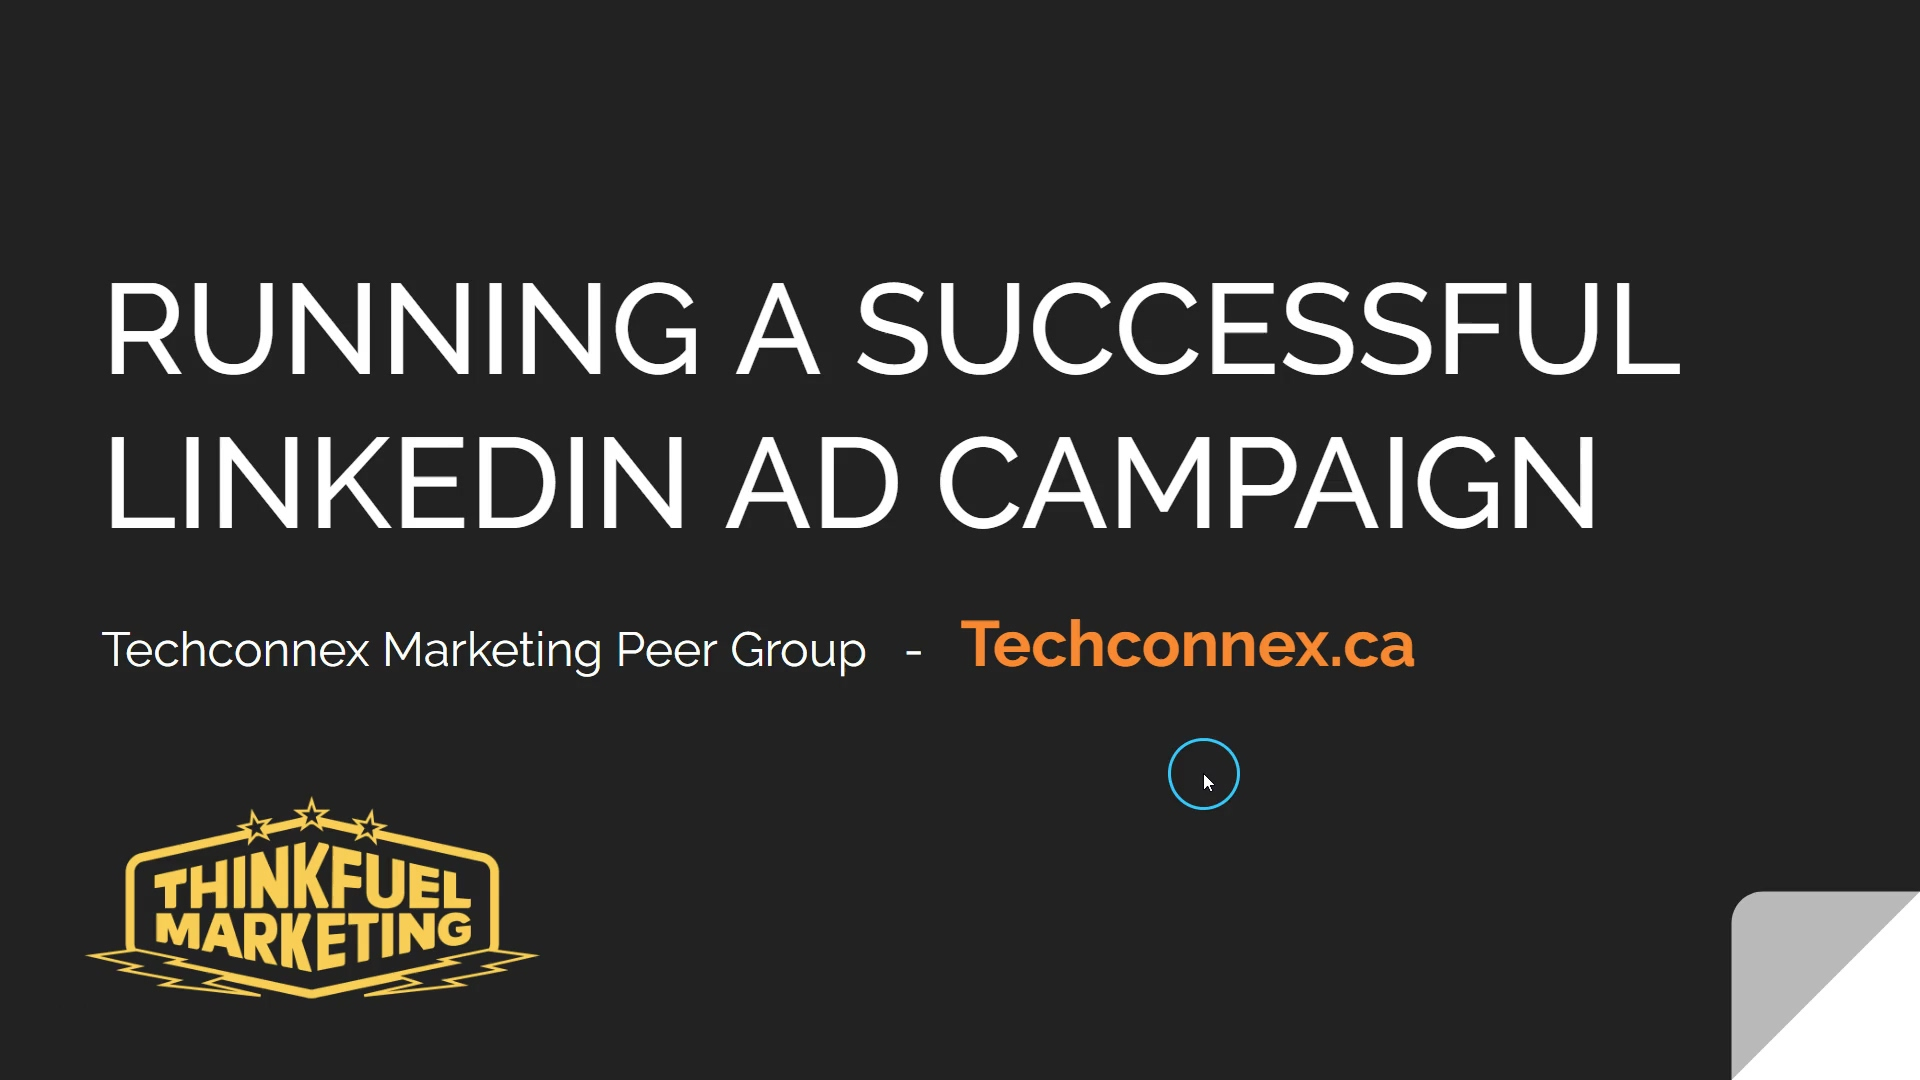 Running a Successful LinkedIn Ad Campaign - Marketing Peer Group